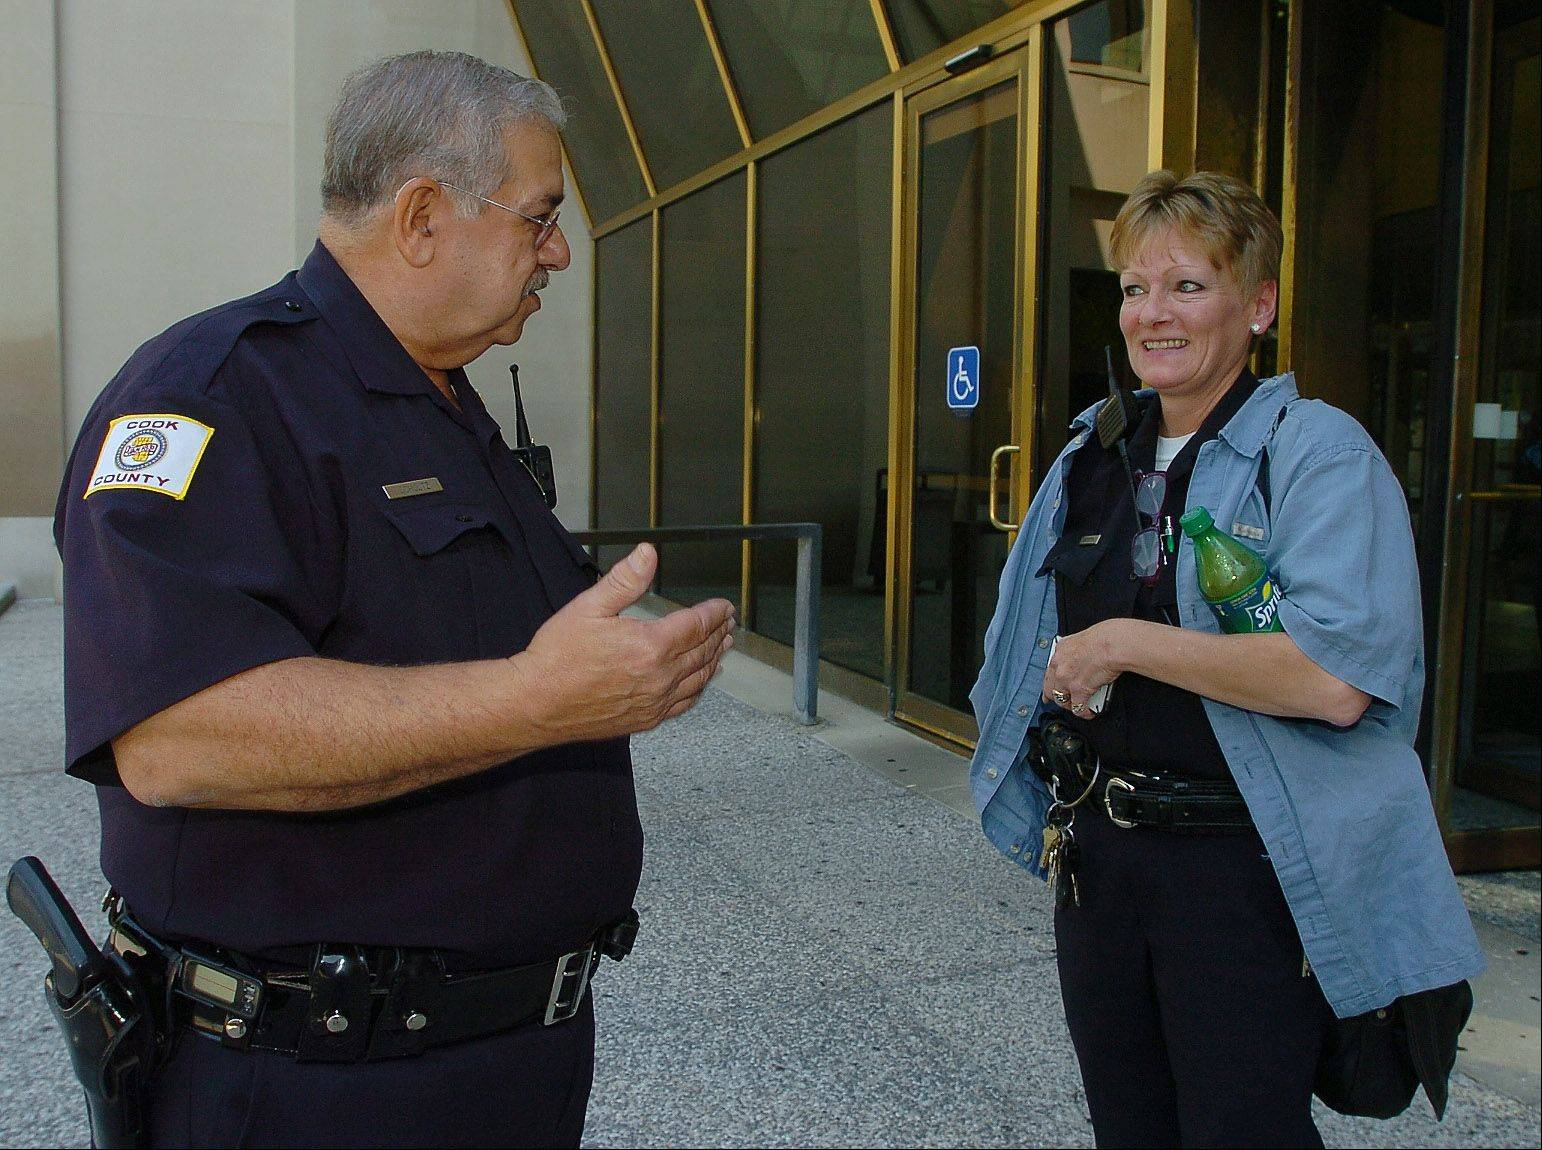 Cook County Sheriff's Deputy Stan Schultz. who's retiring after 46 years in law enforcement, chats with his partner, Deputy Mary Gersten, on his final day of work at the courthouse.